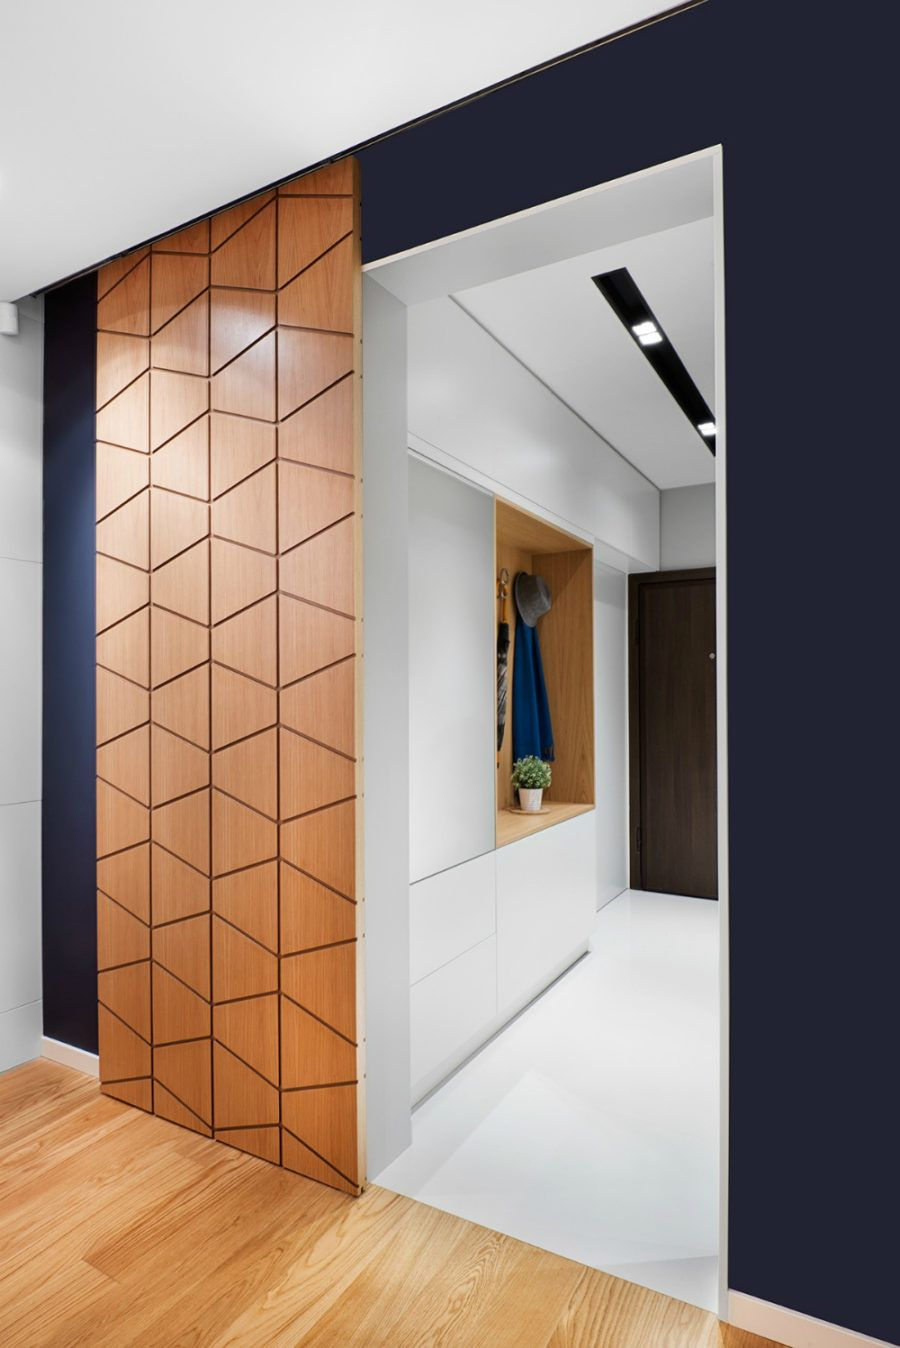 Image Result For Contemporary Bedroom Door Designs: Modern Interior Door Designs For Most Stylish Room